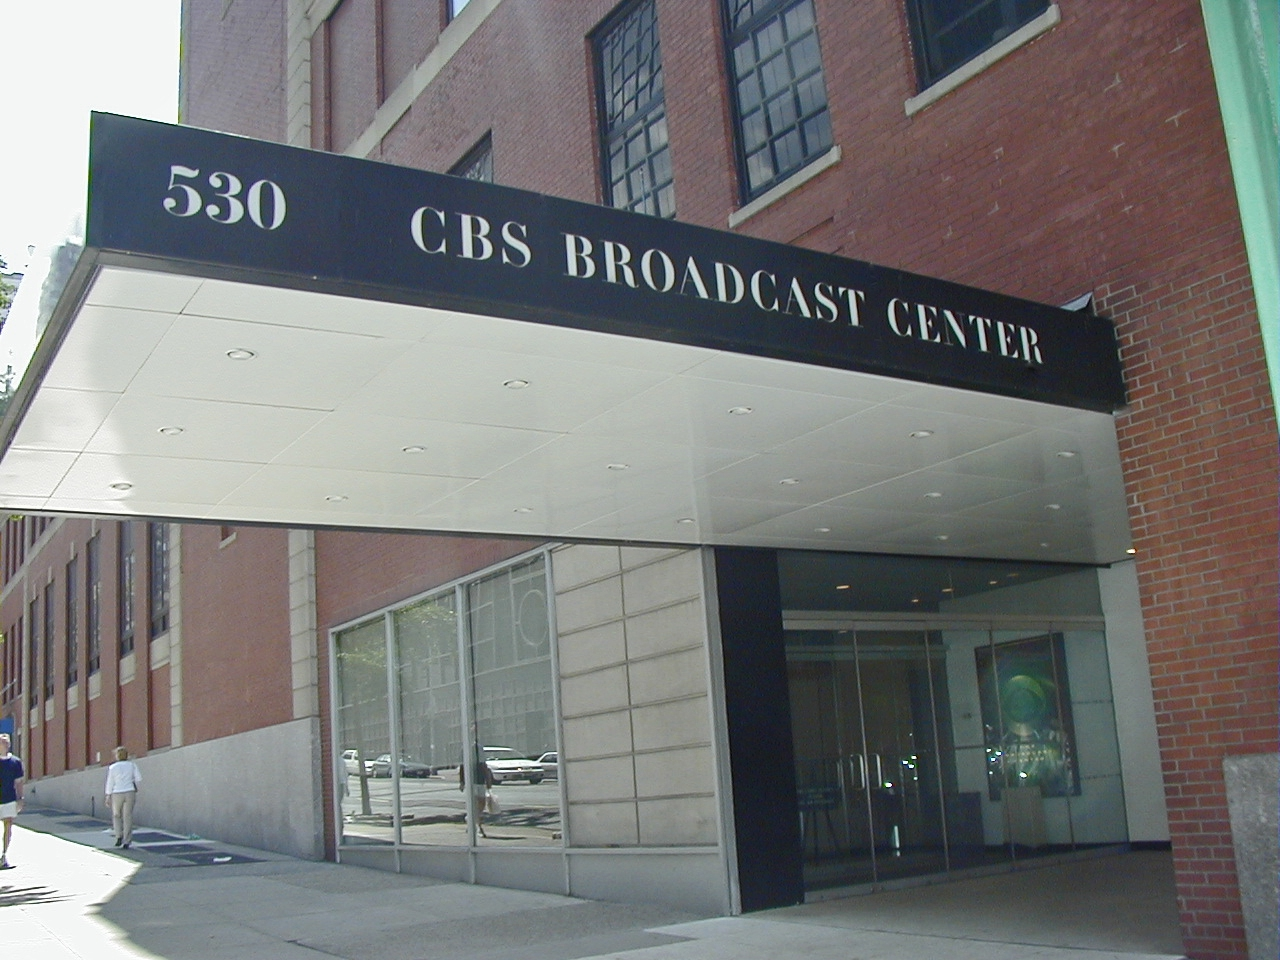 CBS Broadcast Center 530 West 57th street NYC